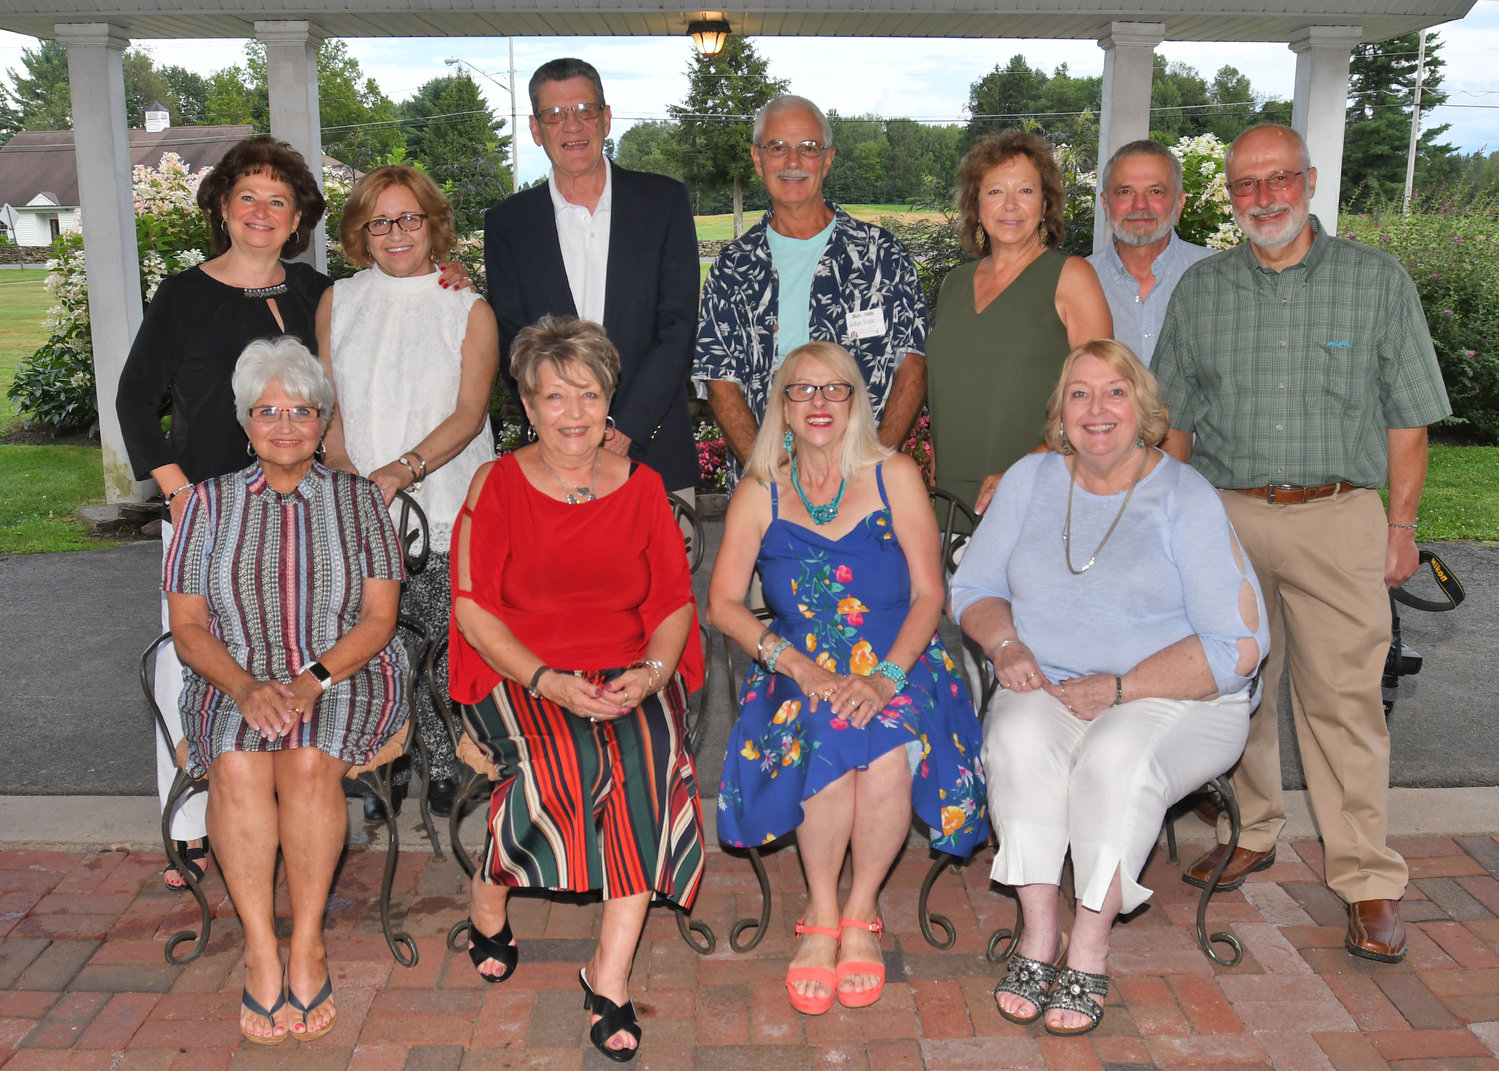 TOGETHER AGAIN — Members of the Rome Free Academy Class of 1969 gathered together on Friday, Aug. 9, at the Teugega Country Club.  Among those rekindling old friendships were, from left, front row: Bonnie Bole Goetz; Carolyn Peluso Corigliano; Joan Conley Hills; Eleanor Stadler Marsh; Back row: Carol Daniello Furgol; Arlene Martin; Jerry Corigliano; John Ruscito; Janis Hubiak Norelli; Jack Trophia, Quantico, Va.; and Joe Fontana.